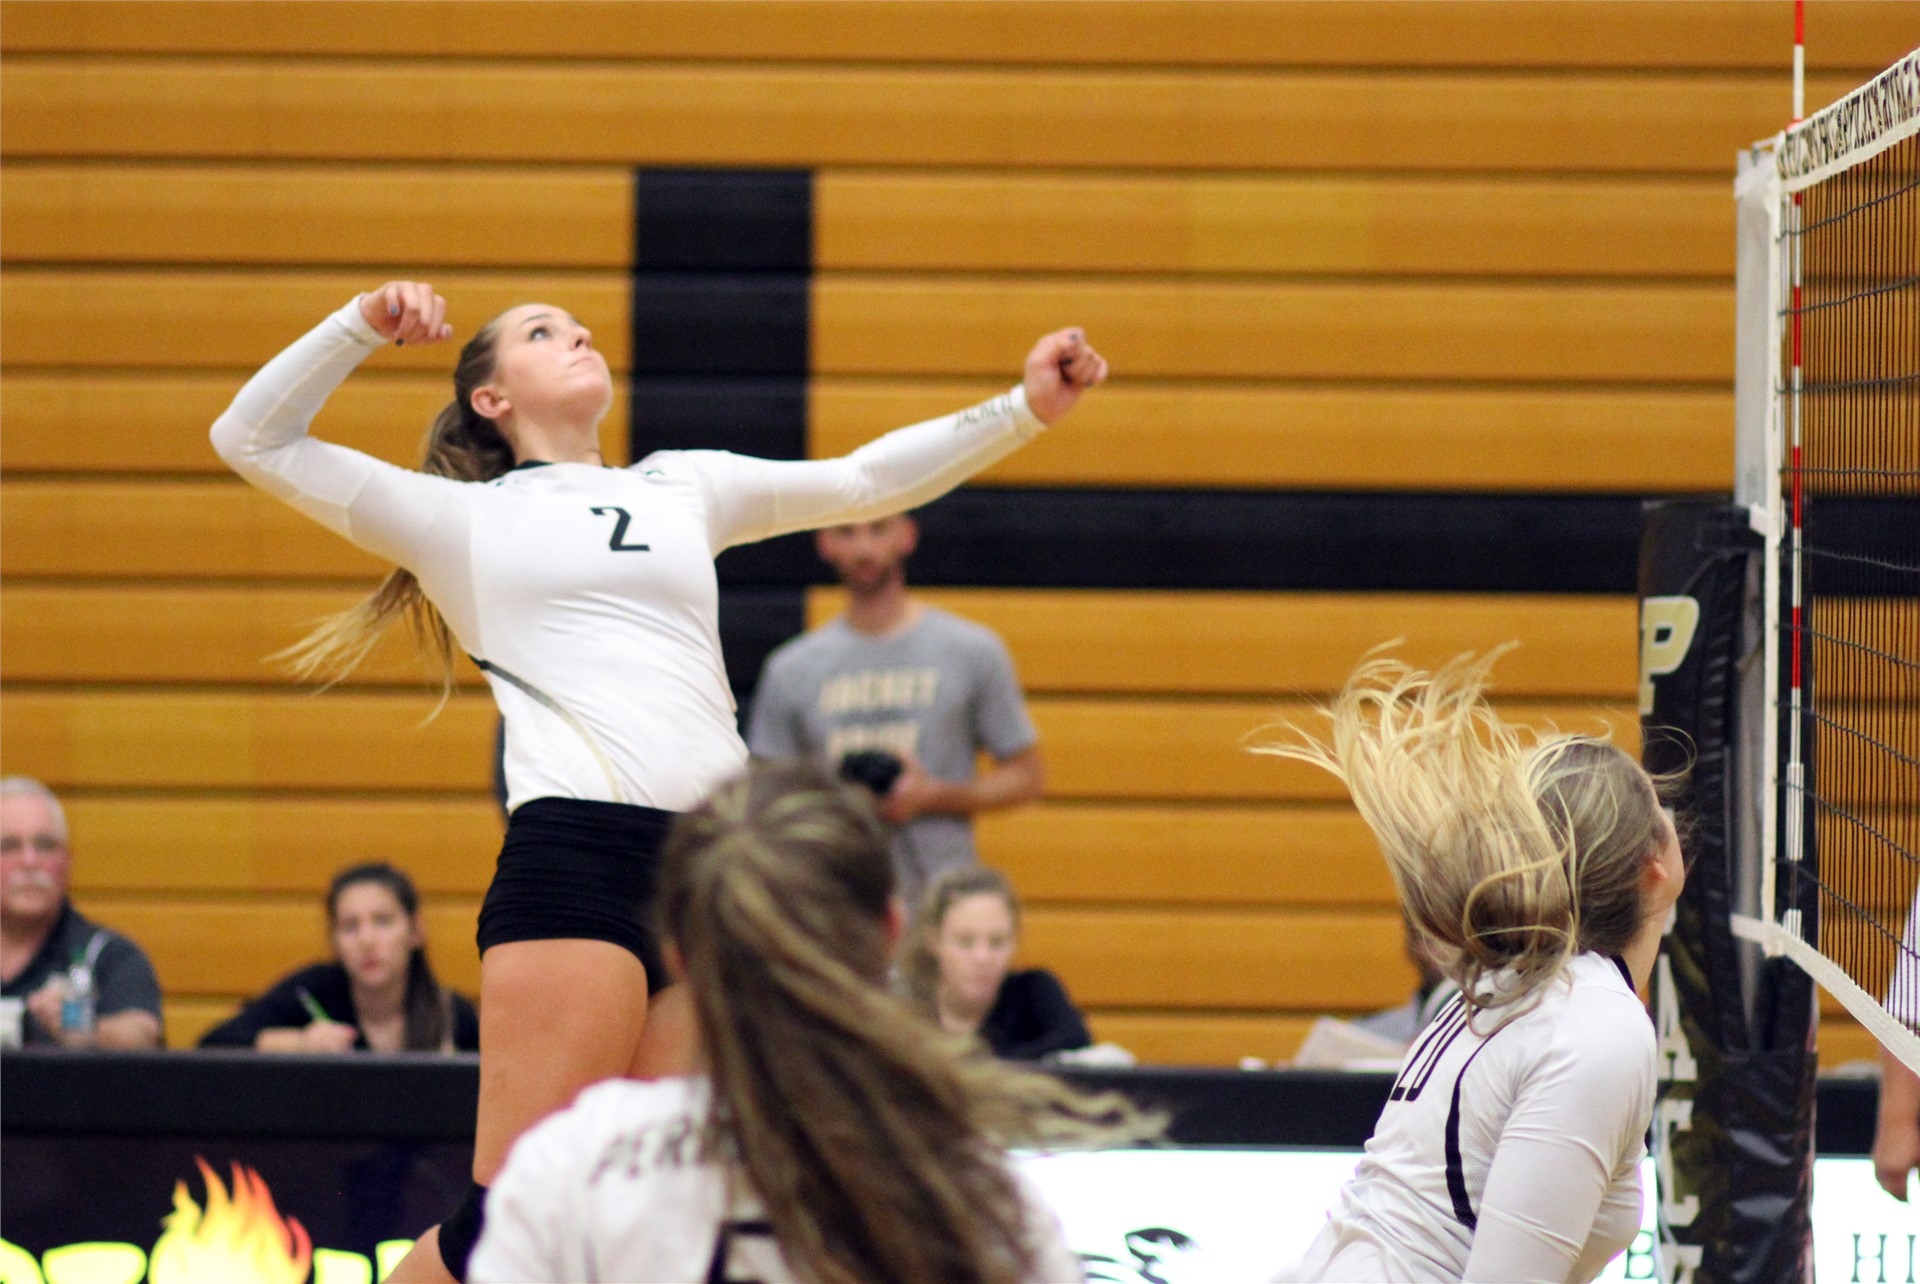 PHS volleyball players attempting to spike a shot